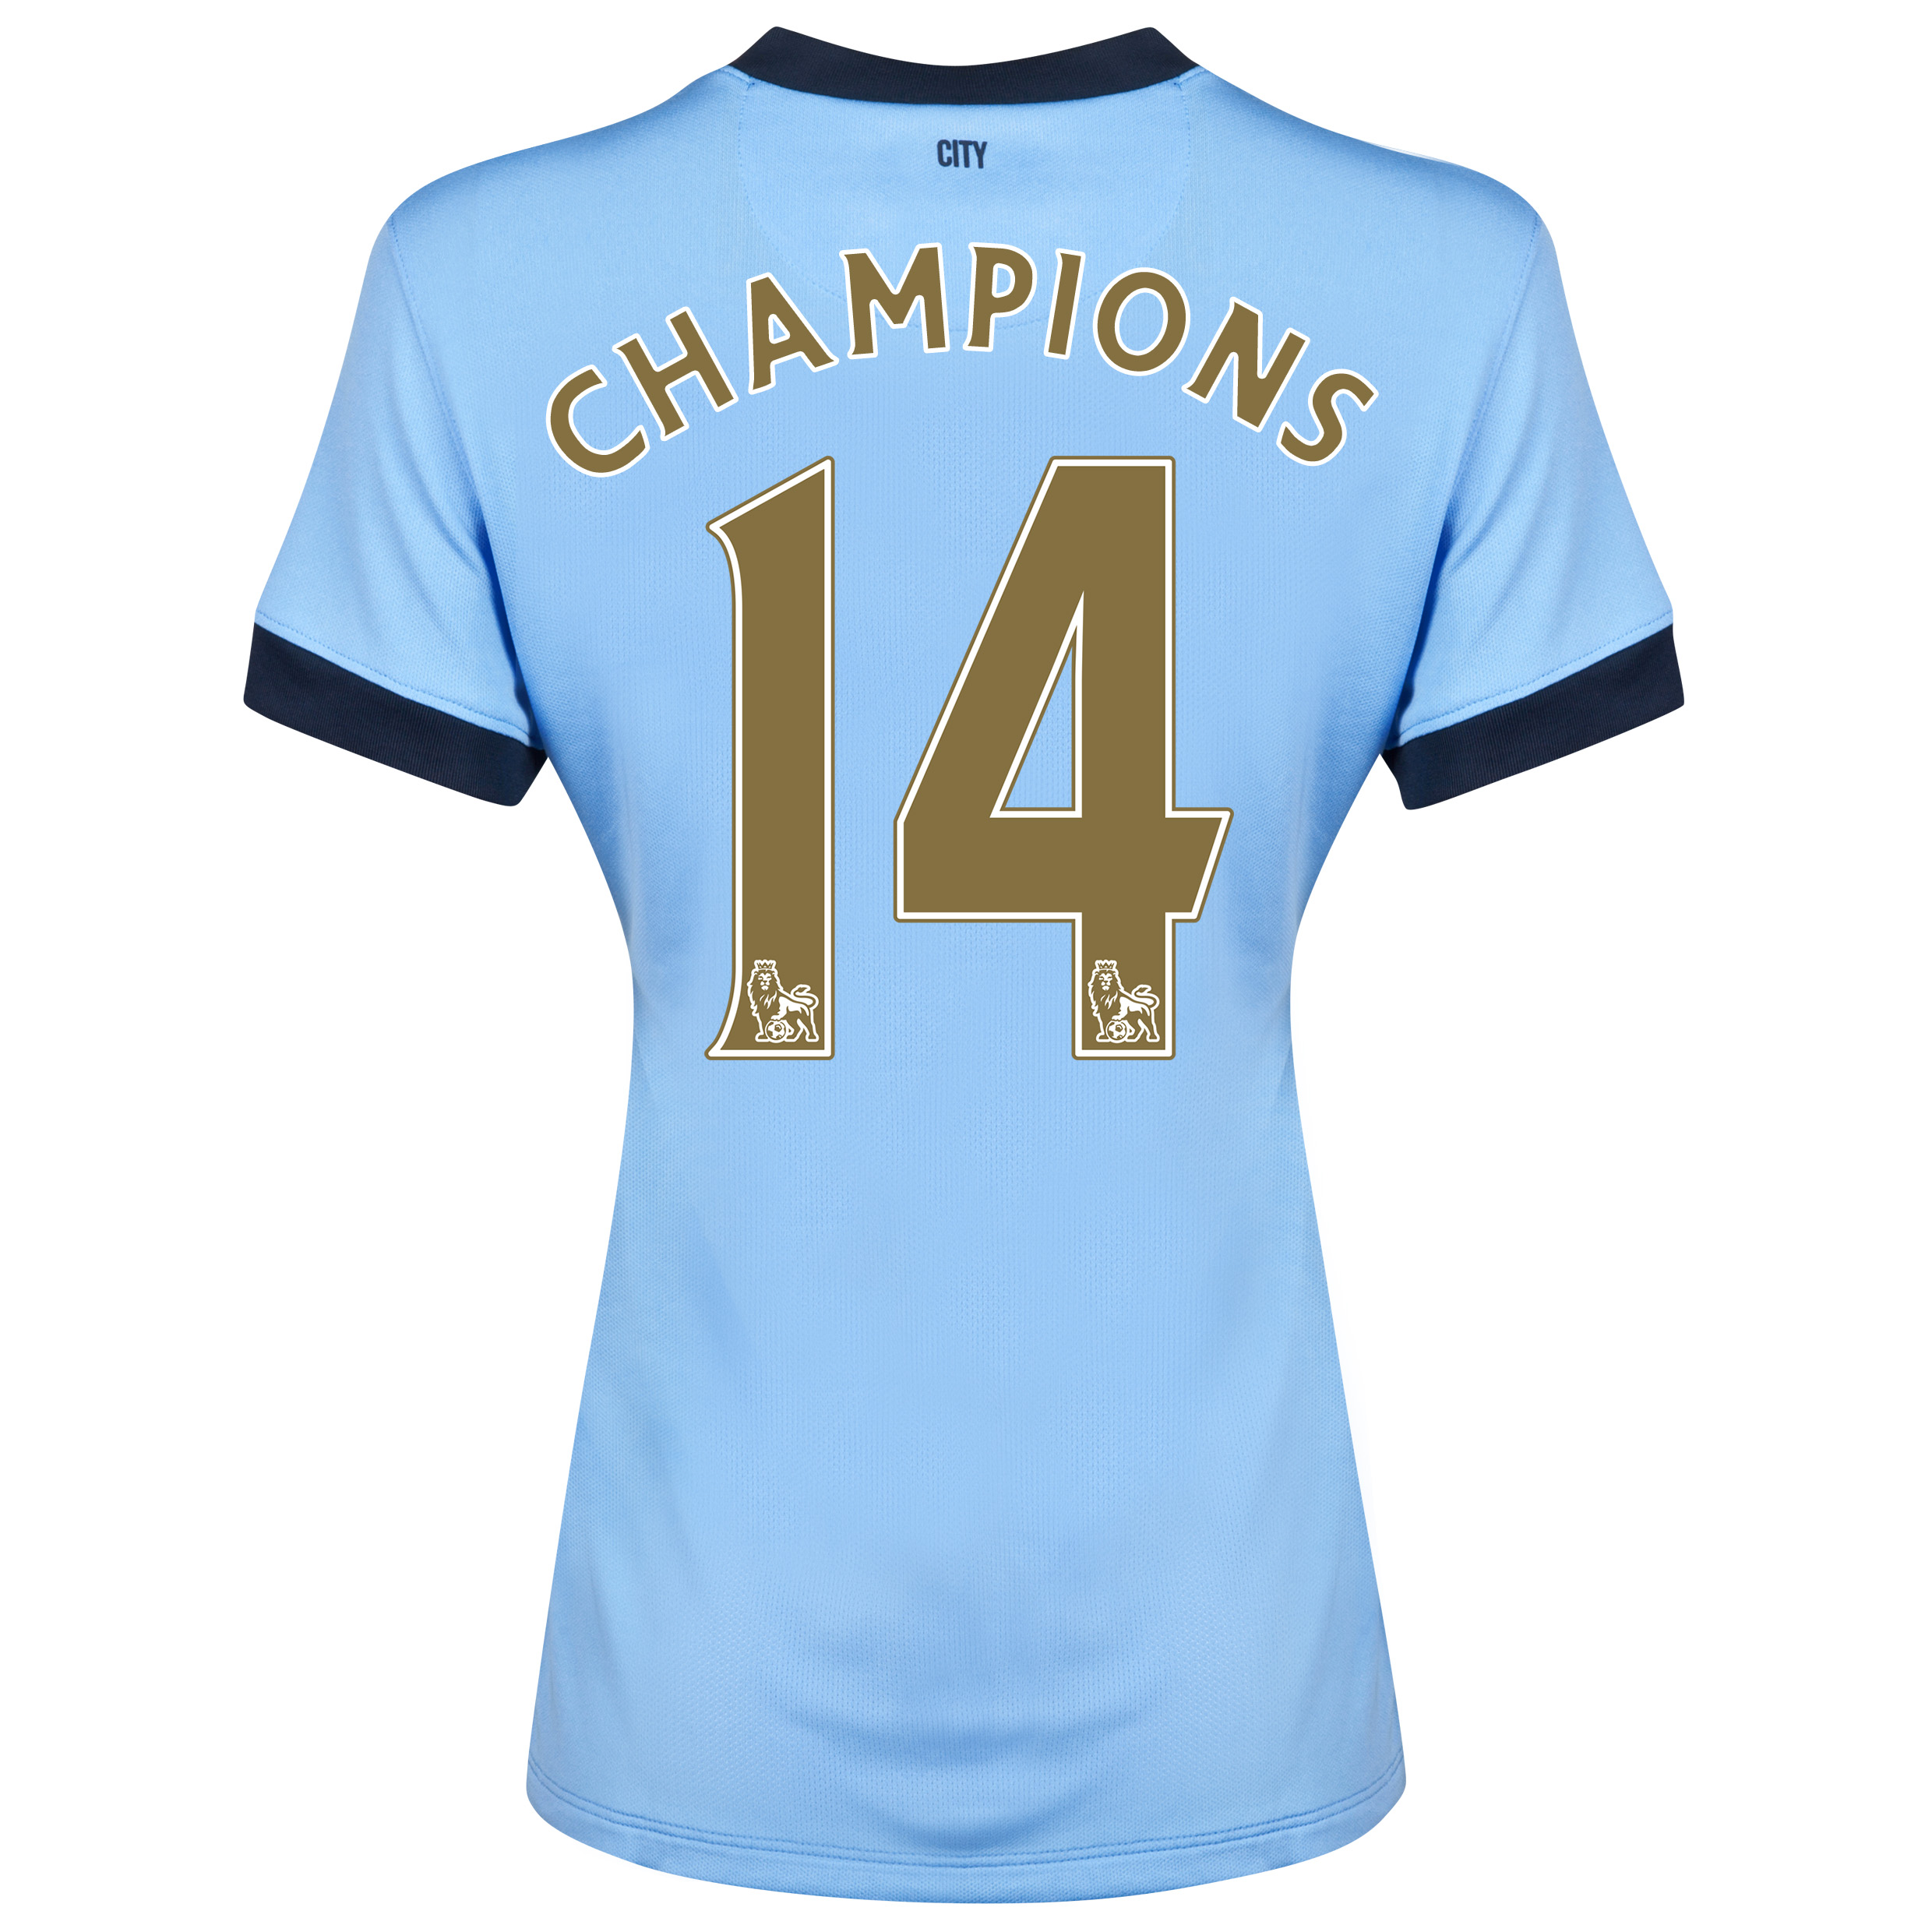 Manchester City Home Shirt 2014/15 - Womens Sky Blue with Gold Champions 14 printing